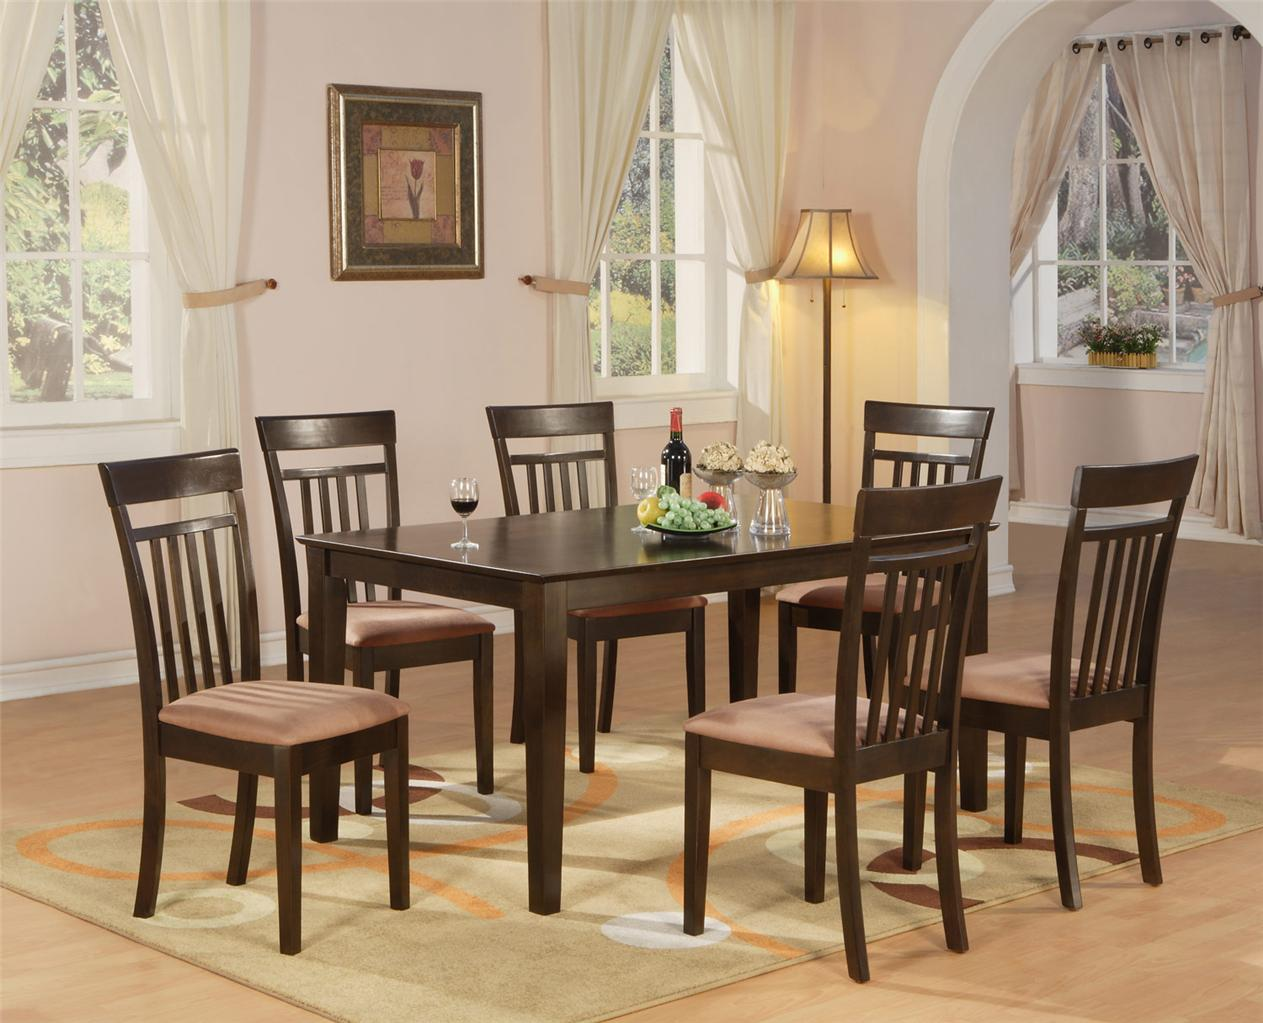 7 pc dining room dinette kitchen set table and 6 chairs ebay On kitchen dining room sets